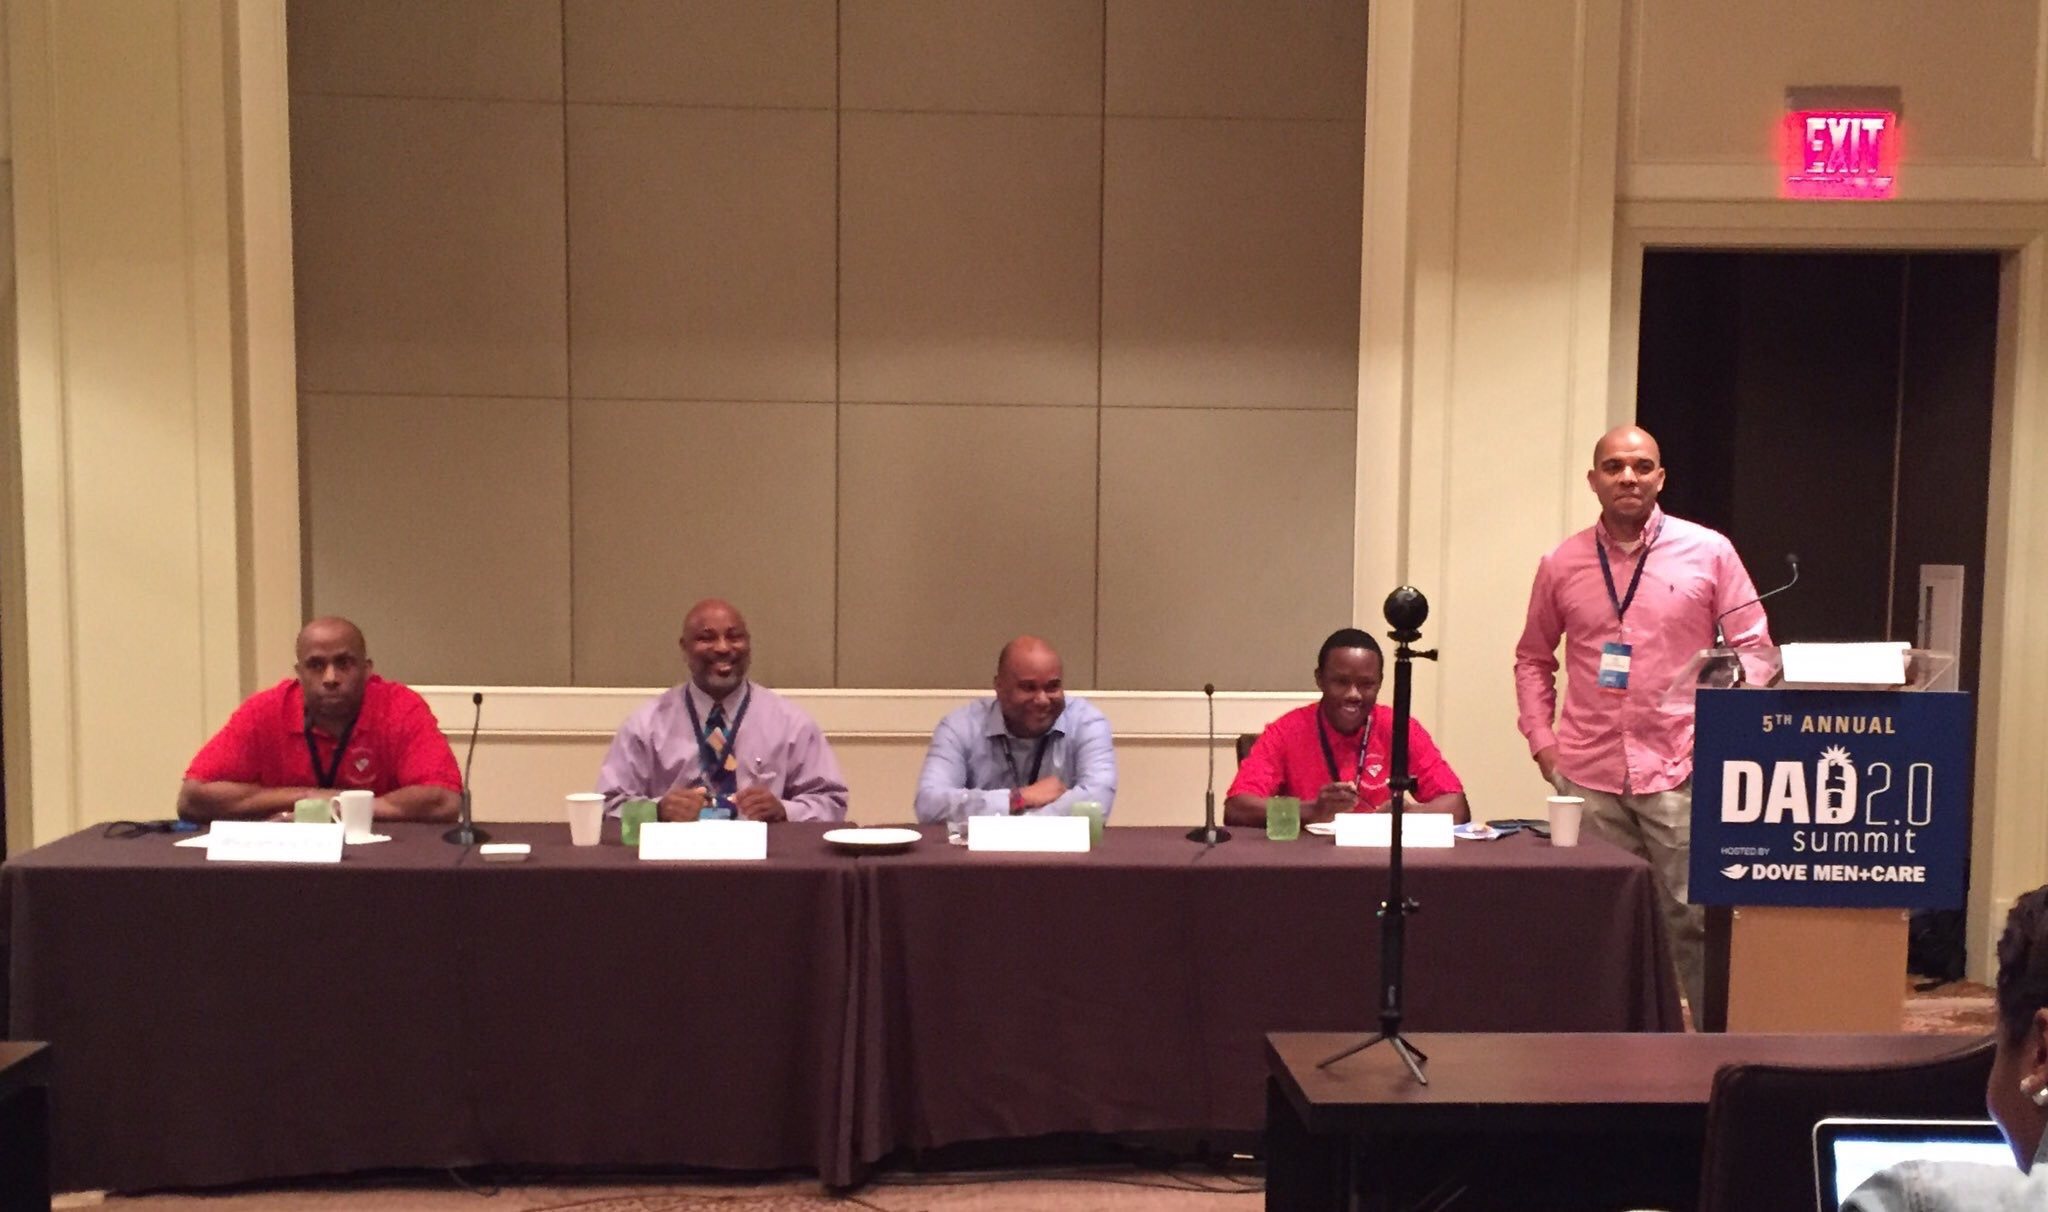 The panel, which included Darren Carter, Nathaniel Turner, Naeem Khari Turner-Bandele and me was moderated by Dee Lanier.